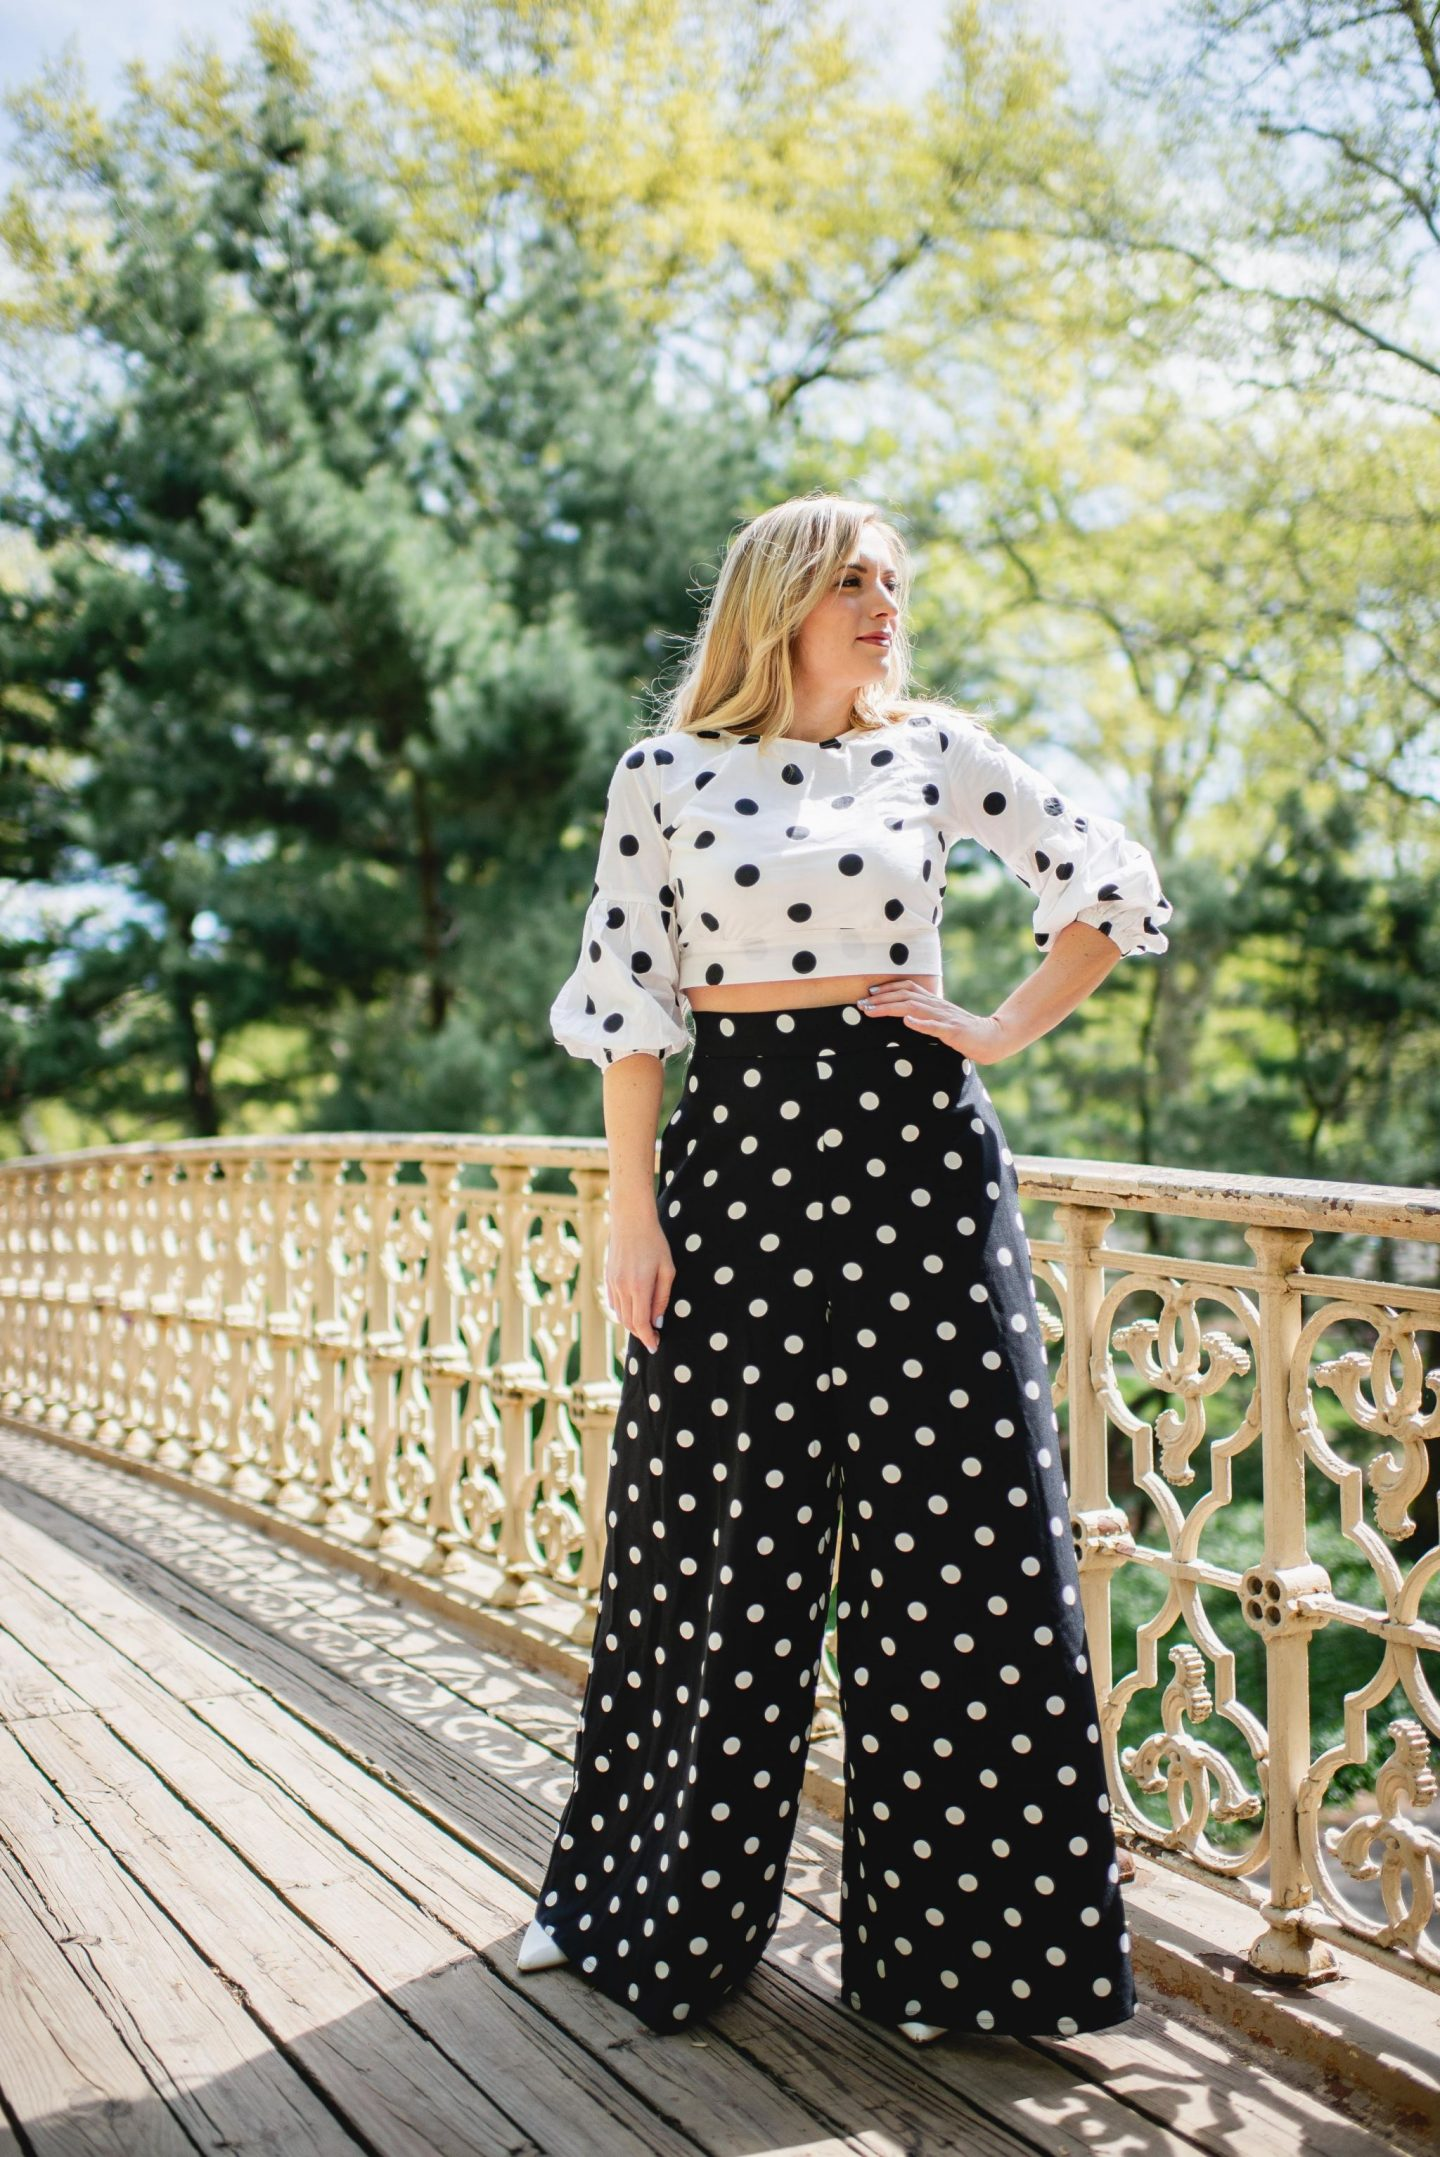 blonde wearing polka dot crop top and wide leg polka dot pants - outfit idea to show how to styke polka dots for spring/summer 2019